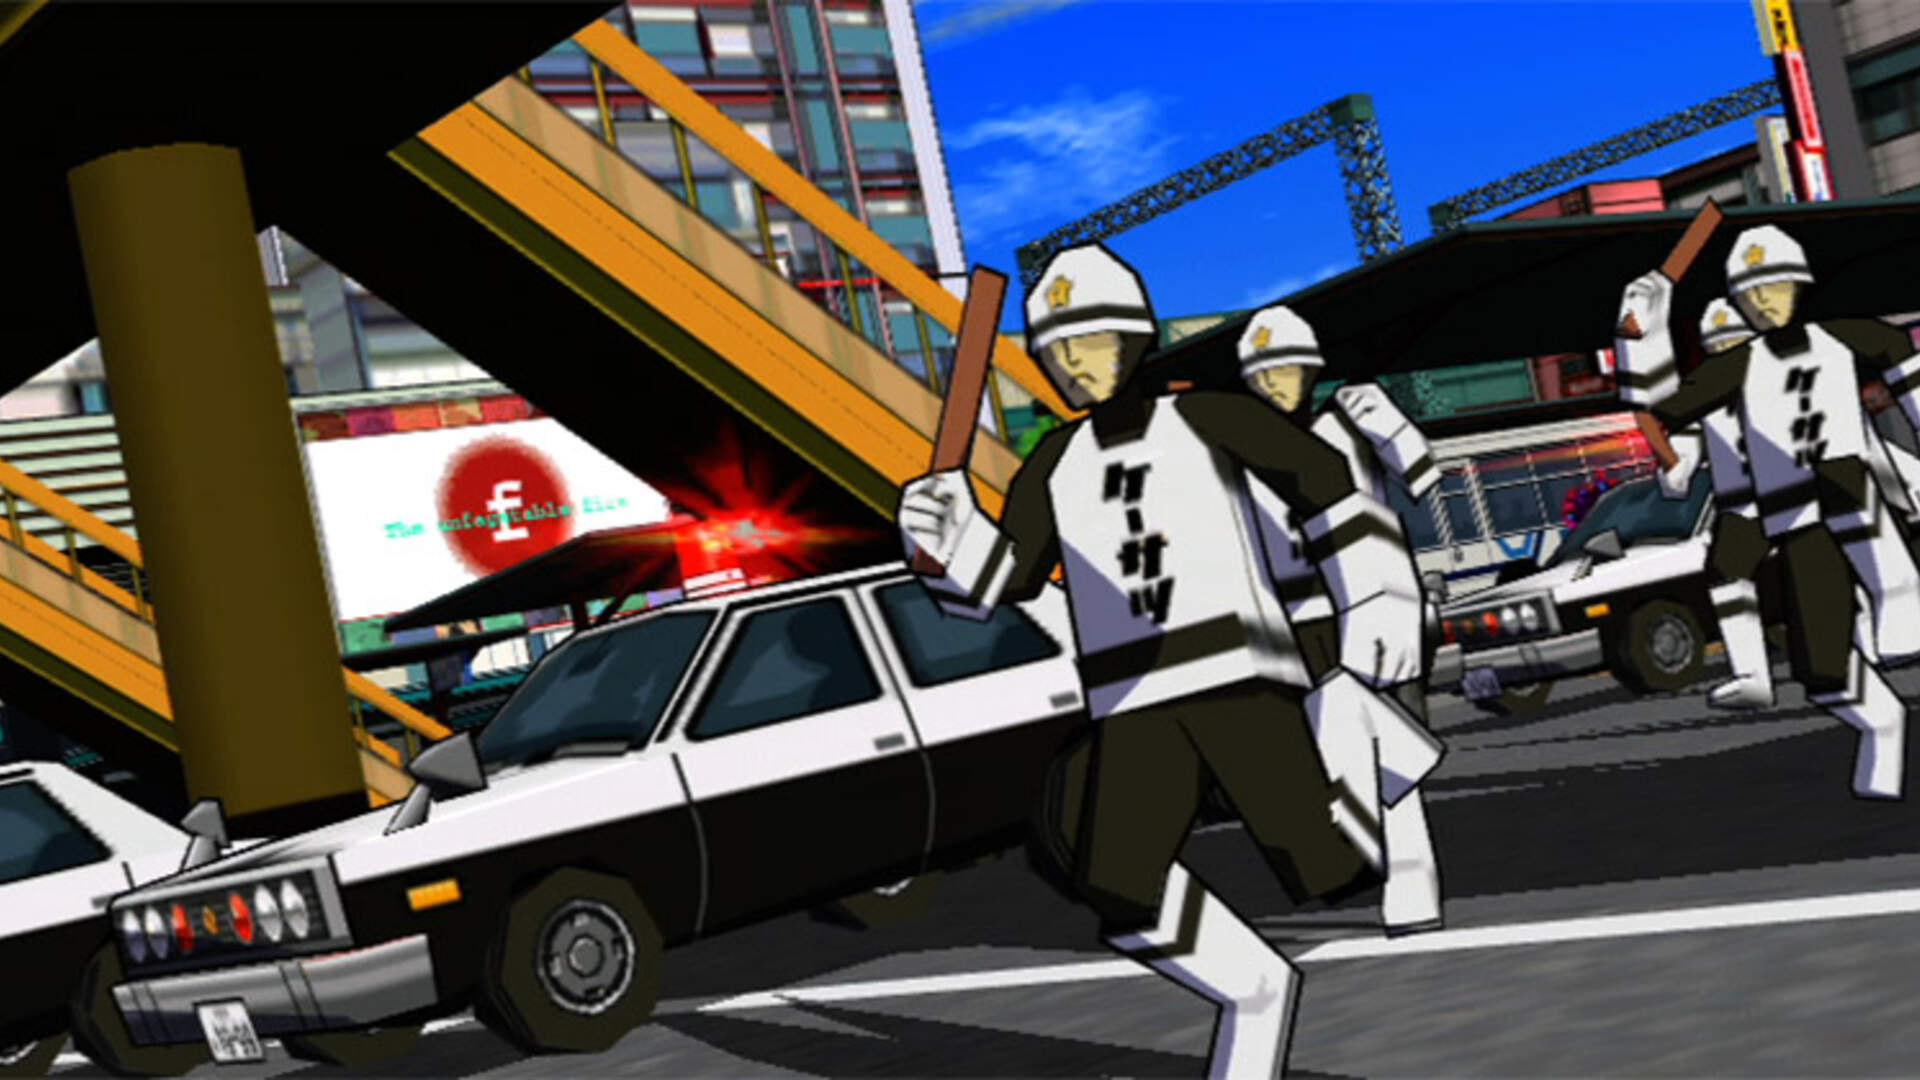 USstreamer: Inflict Major Property Damage with Jet Set Radio [Update: Archived!]